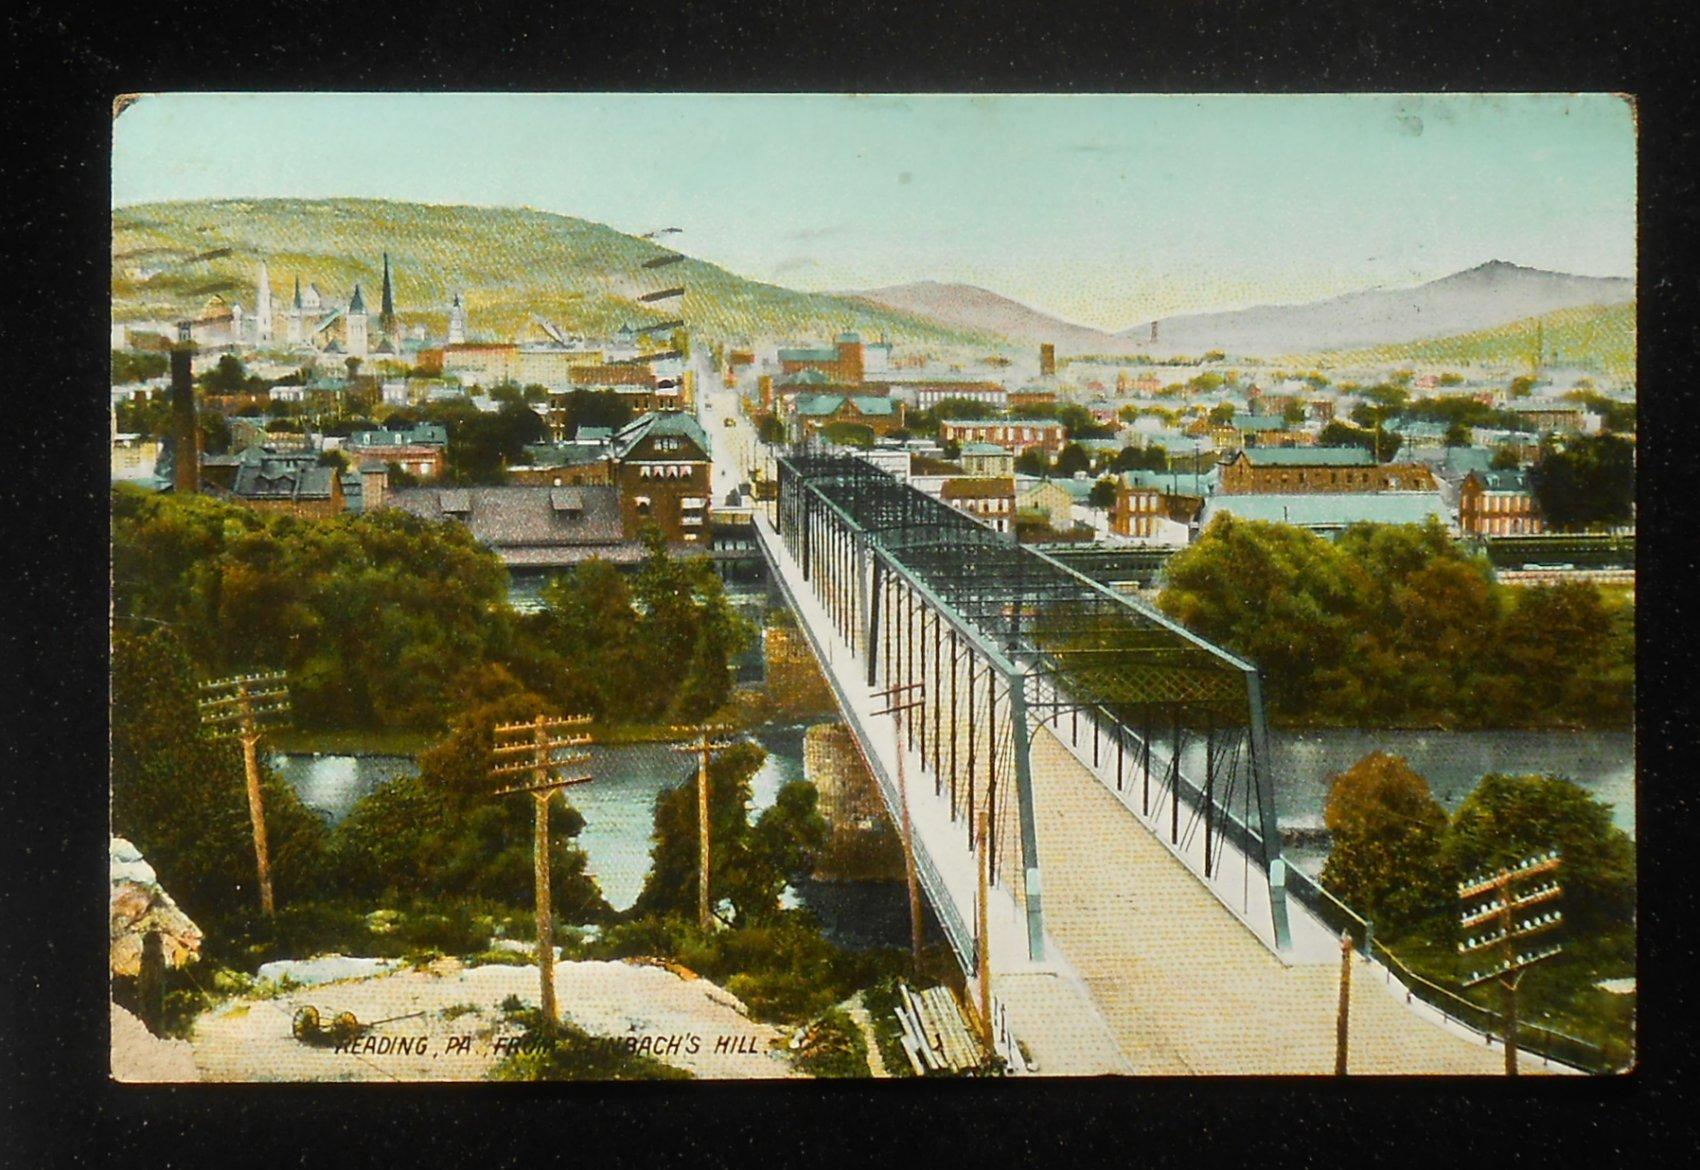 Details about 1911 from Leinbach's Hill Penn Street Bridge PRR Railroad  Station Reading PA PC